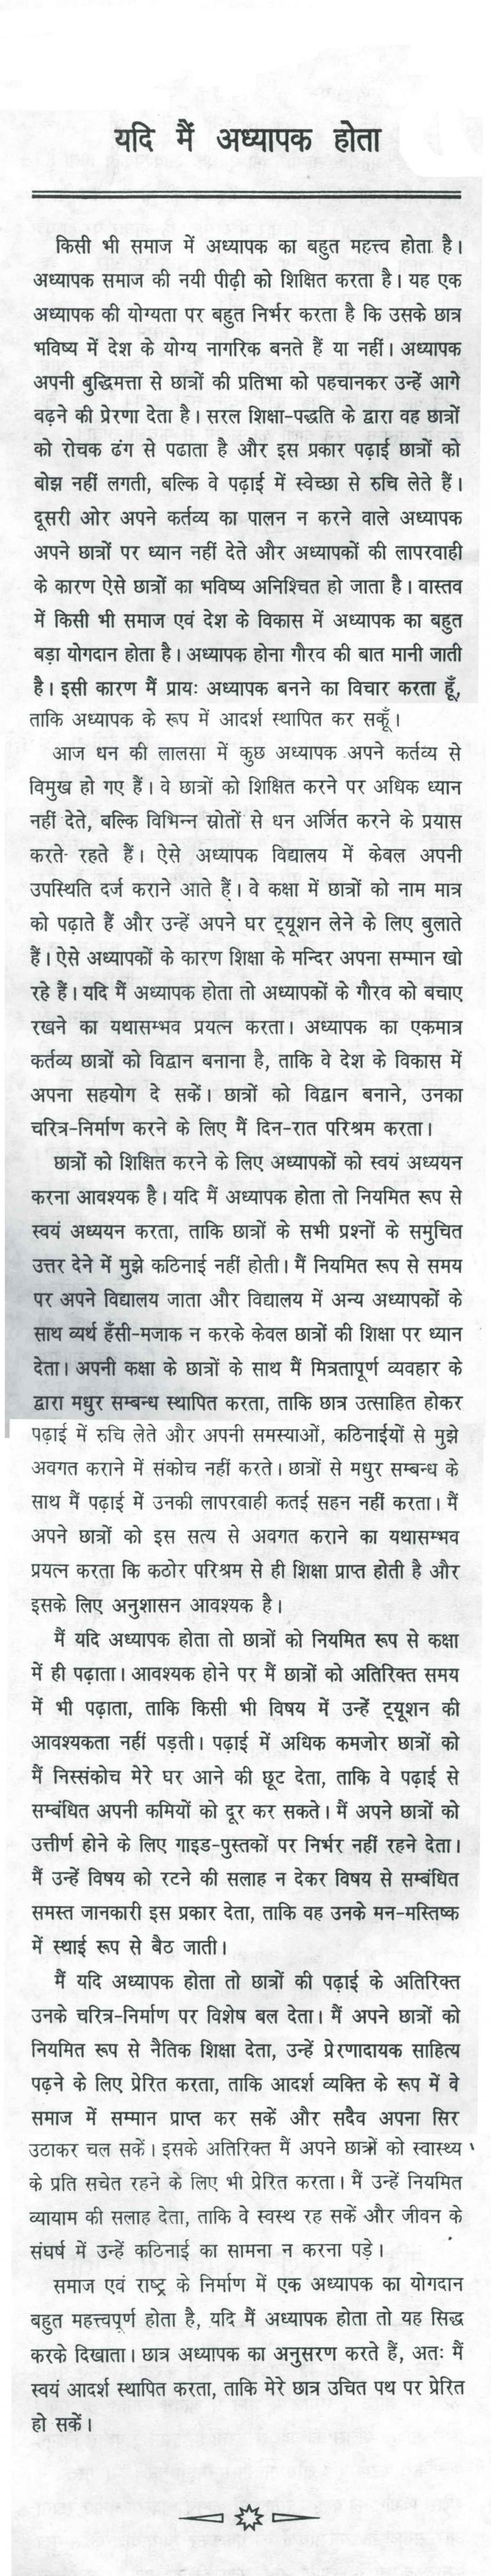 015 Why I Want To Teacher Essay Example 10037 Thumb Amazing Be A Free Sample In Hindi Large